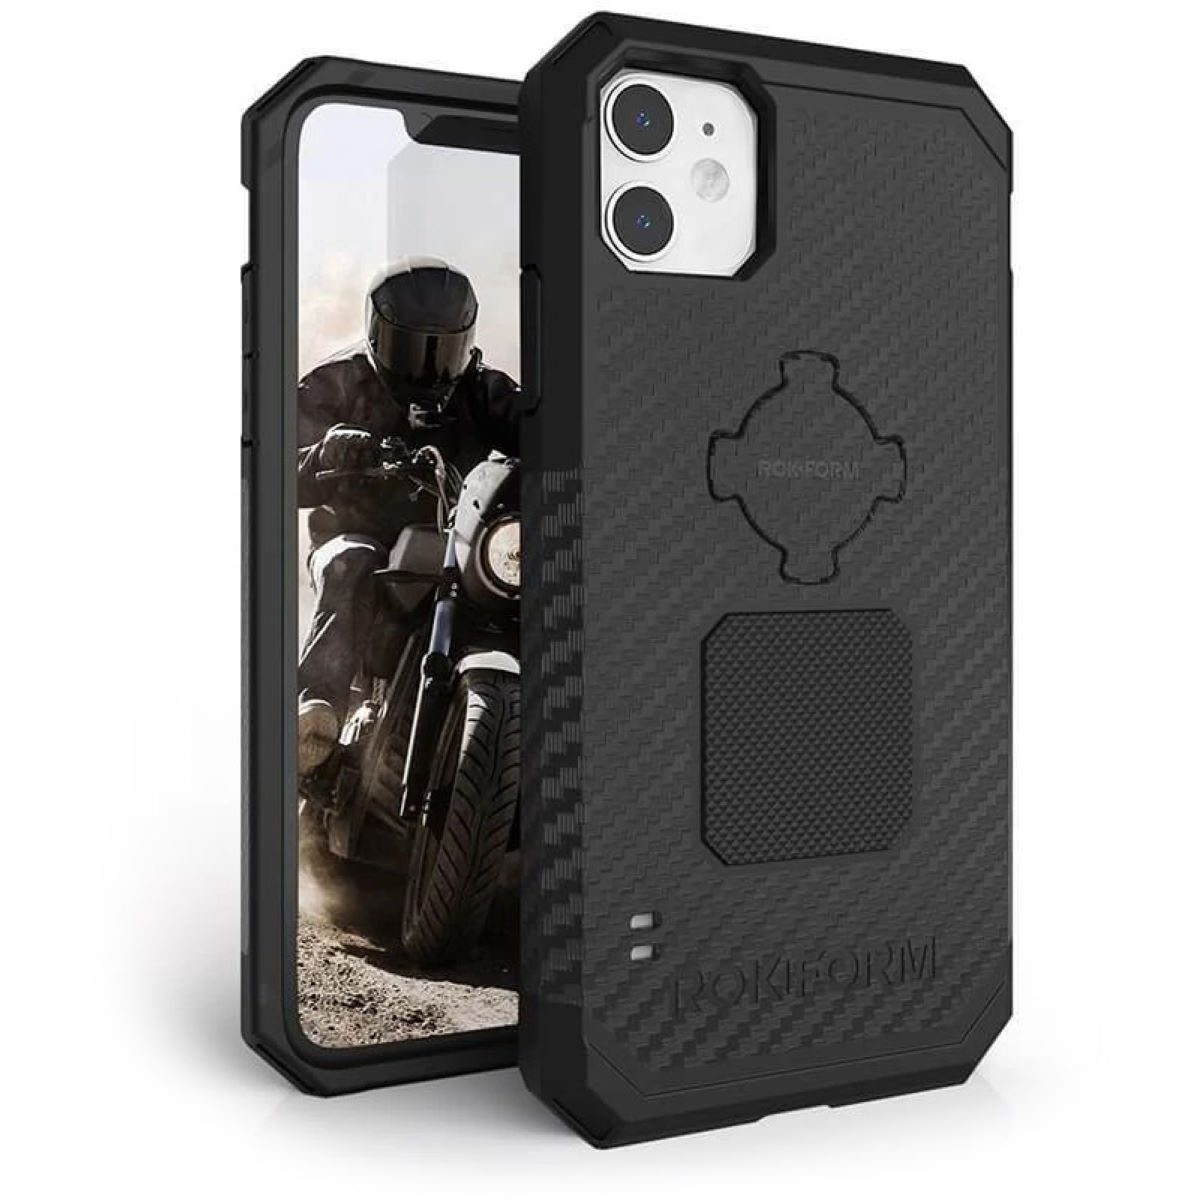 Rokform Rugged Phone Case - iPhone 11 - One Size Black | Phone Cases